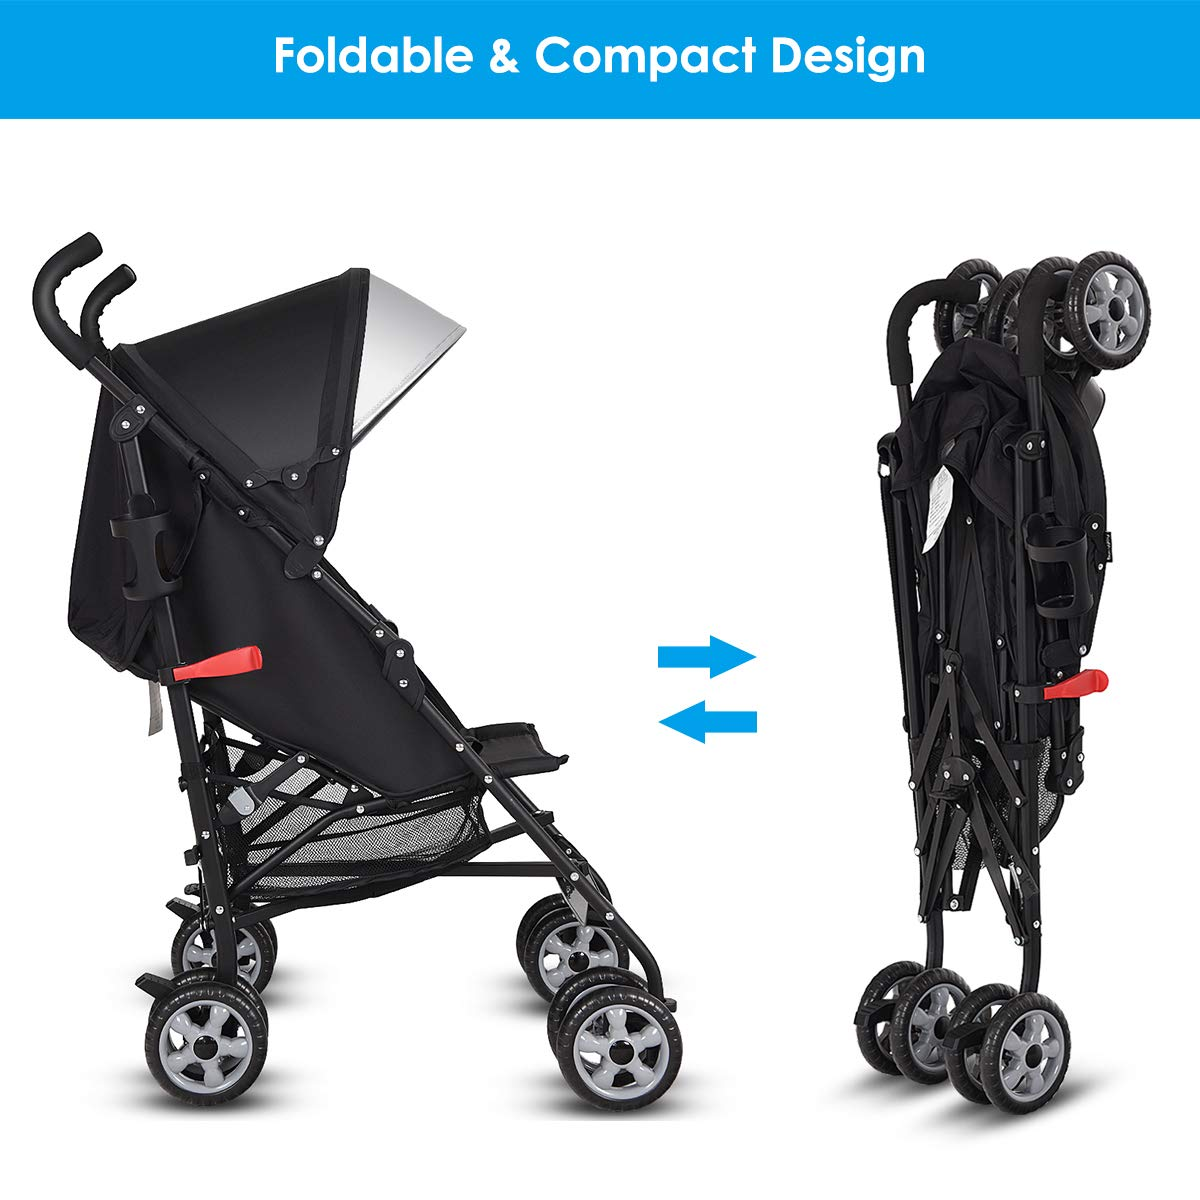 Aluminum Baby Umbrella Convenience Stroller BABY JOY Lightweight Stroller Pink Travel Foldable Design with Oxford Canopy// 5-Point Harness//Cup Holder//Storage Basket